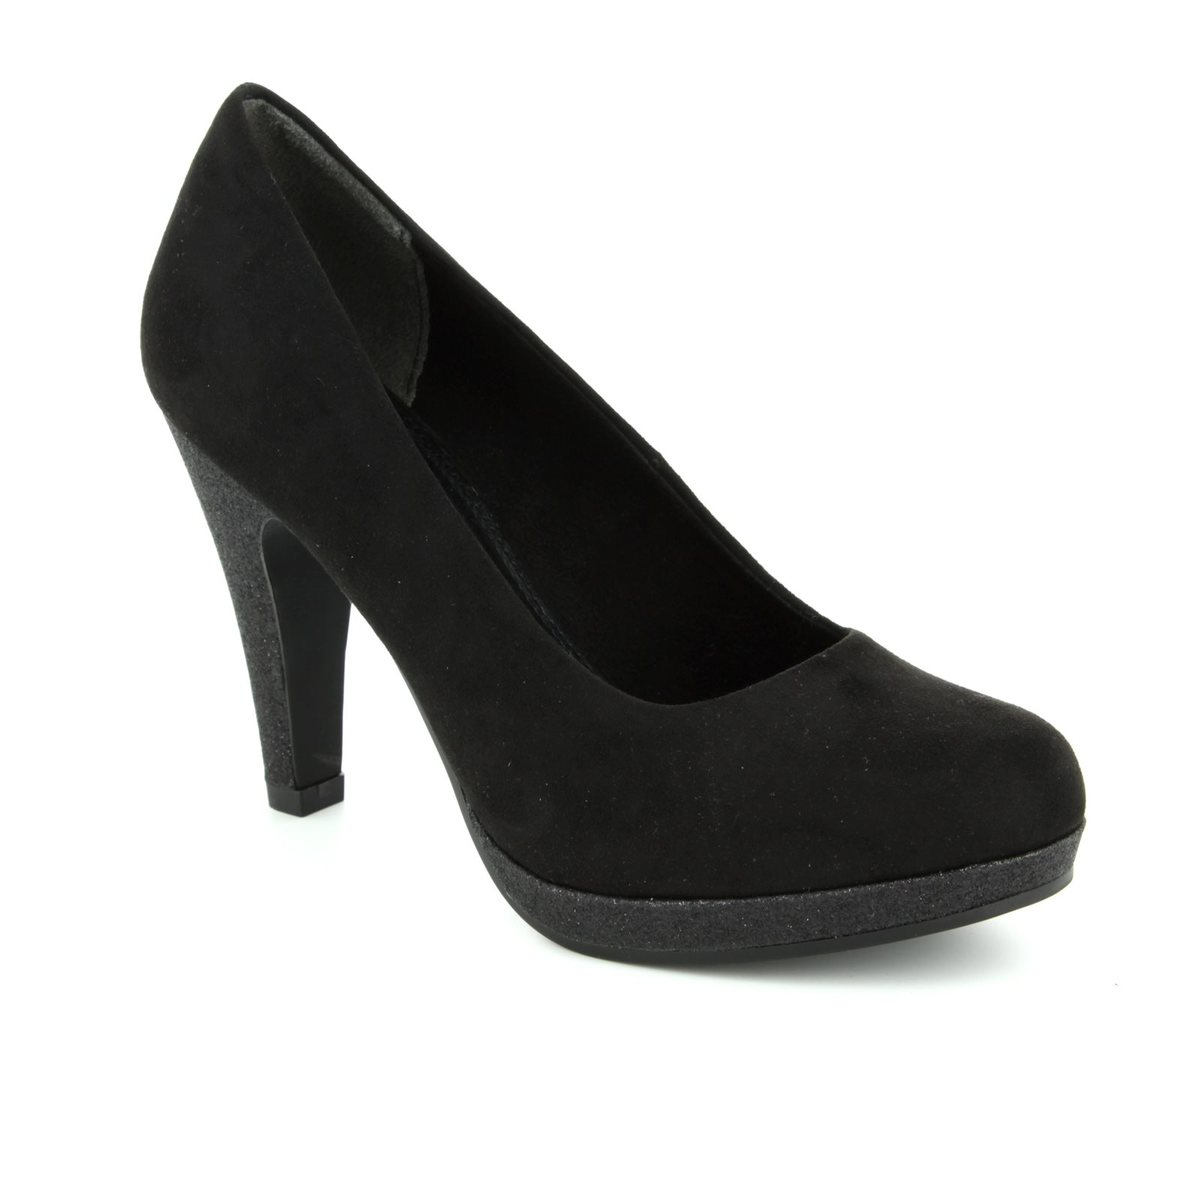 Marco Tozzi High heels - black f4UOZ